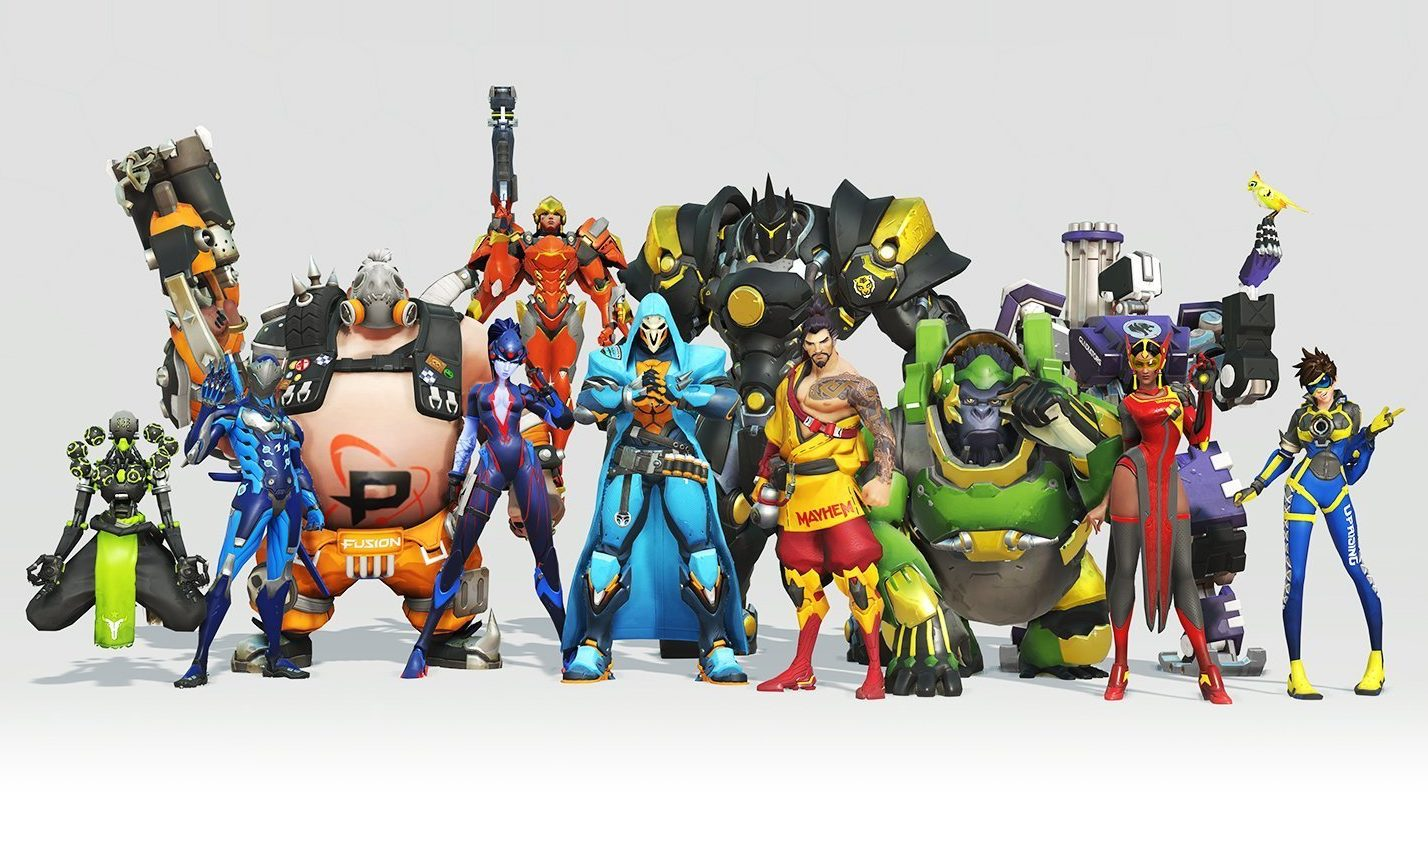 Overwatch League from Activision Blizzard